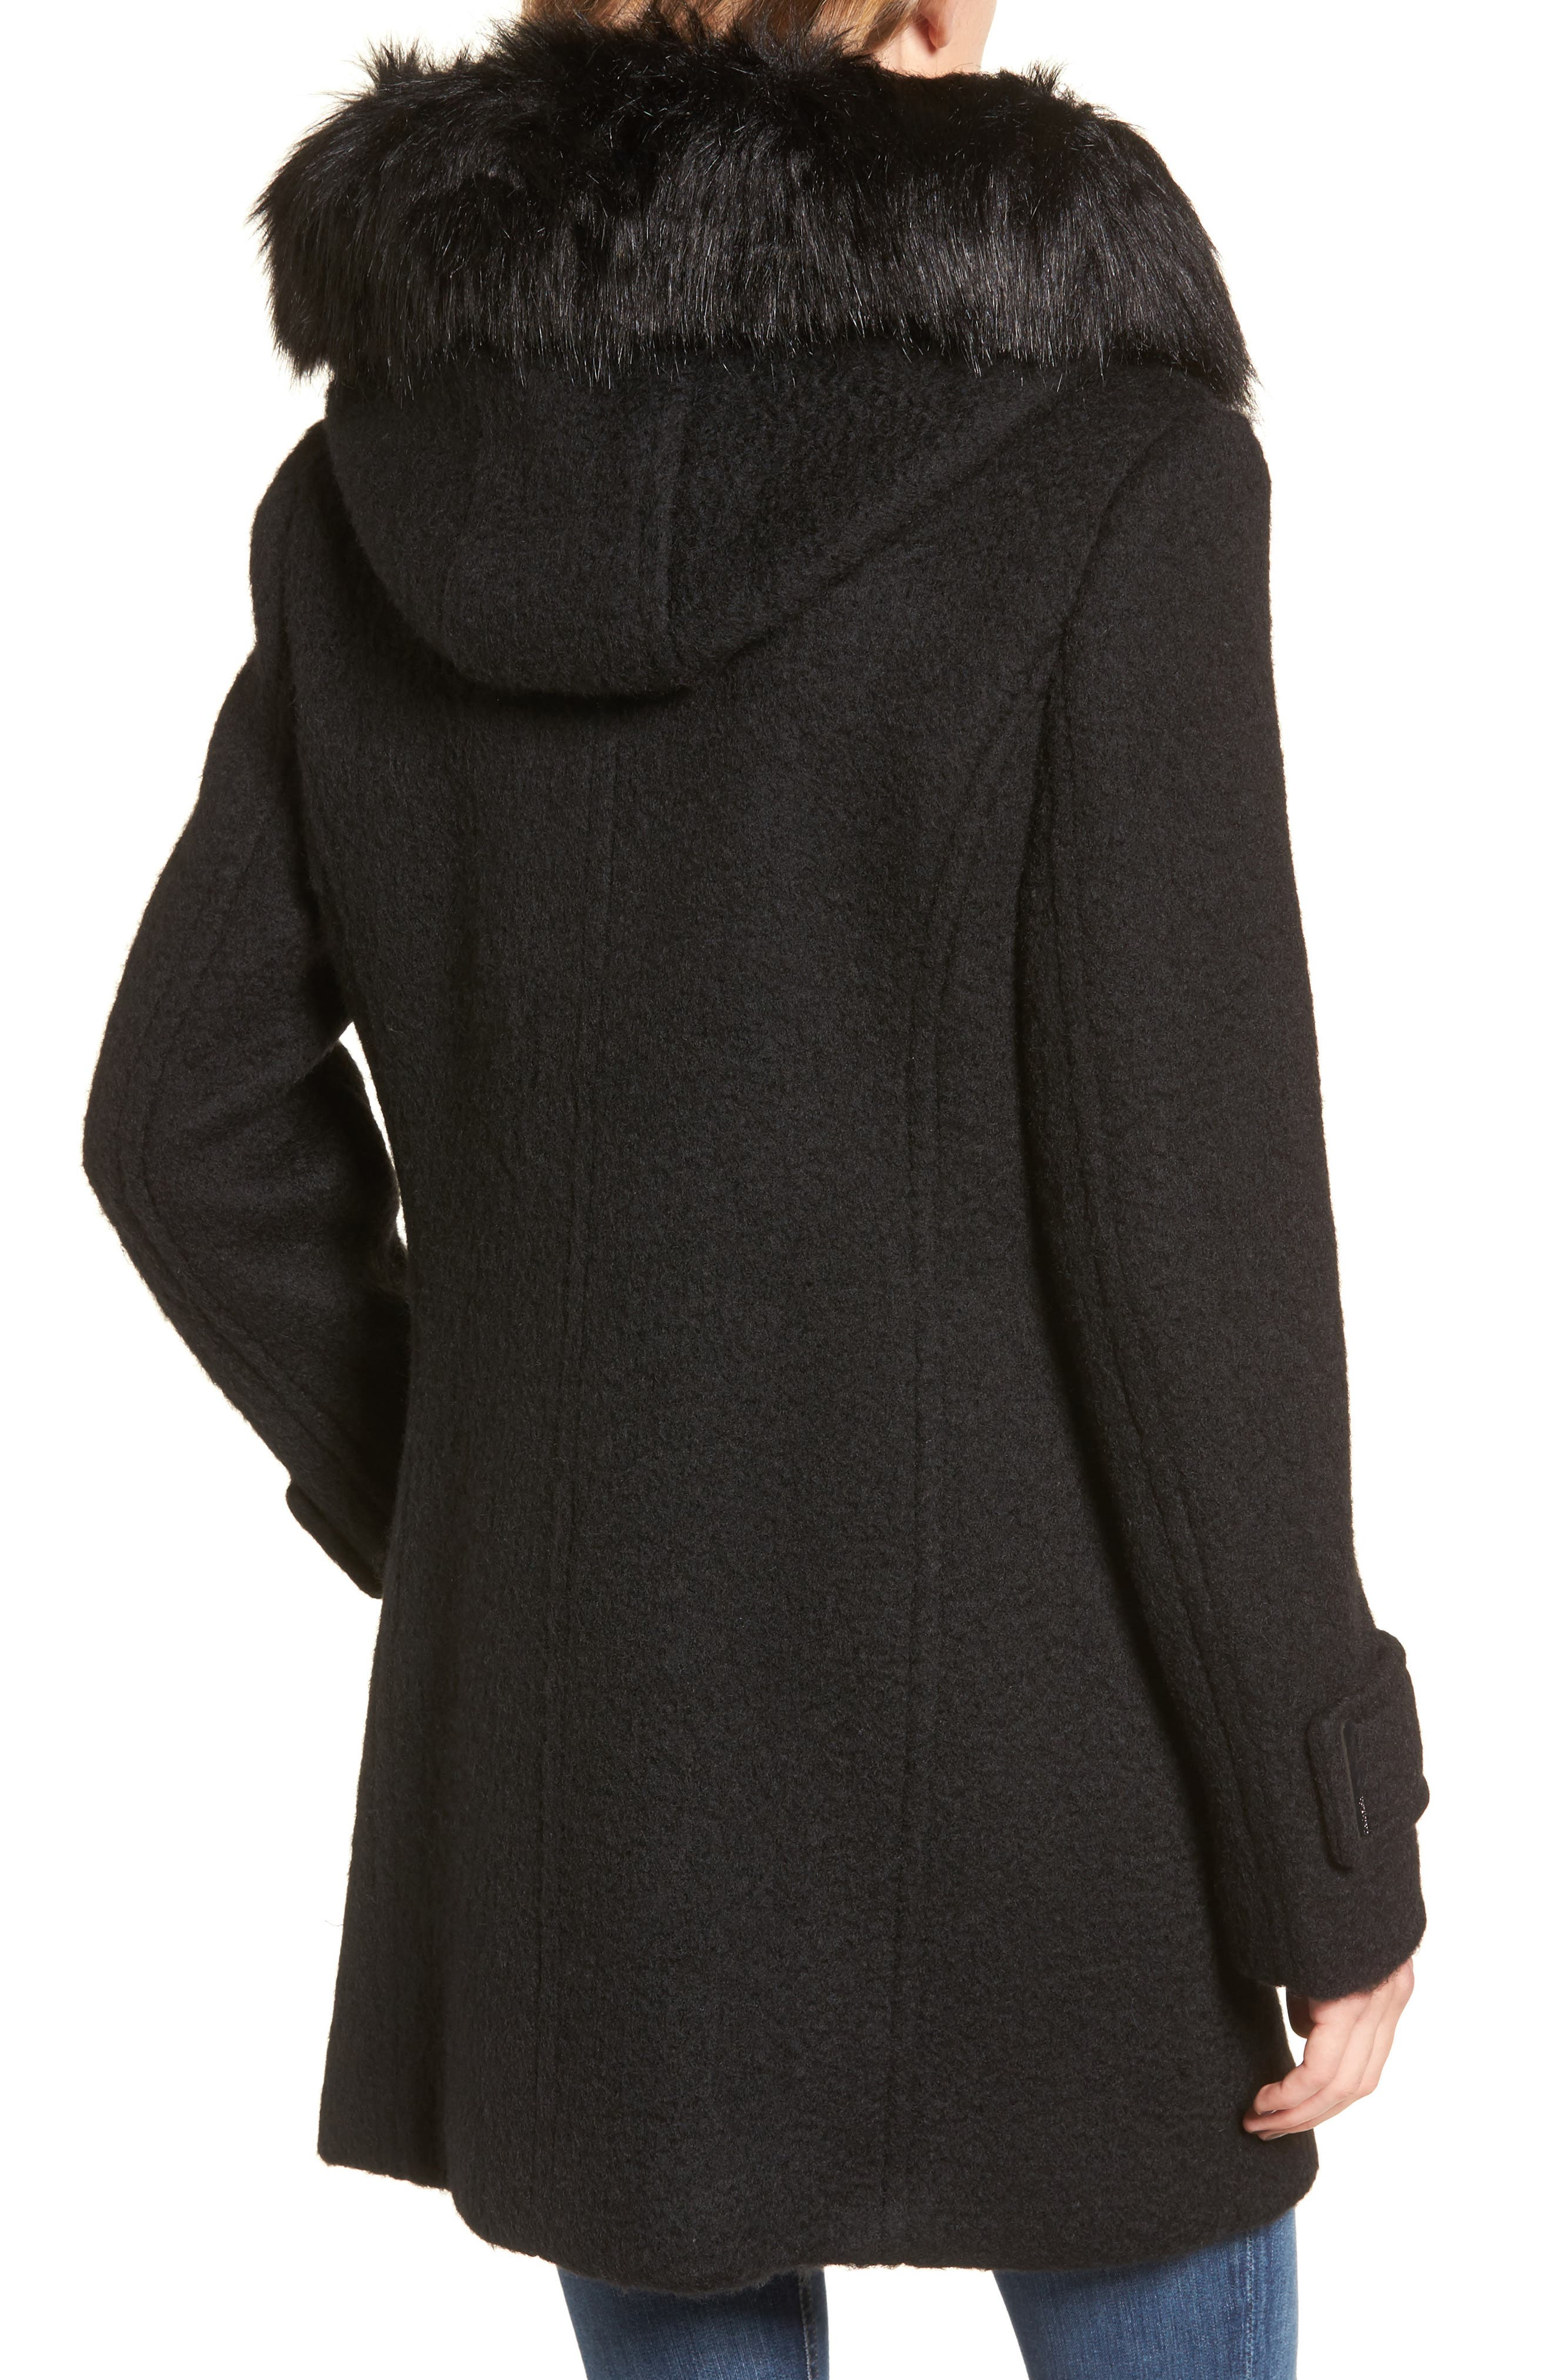 Hooded Wool Blend Jacket with Faux Fur Trim,                             Alternate thumbnail 4, color,